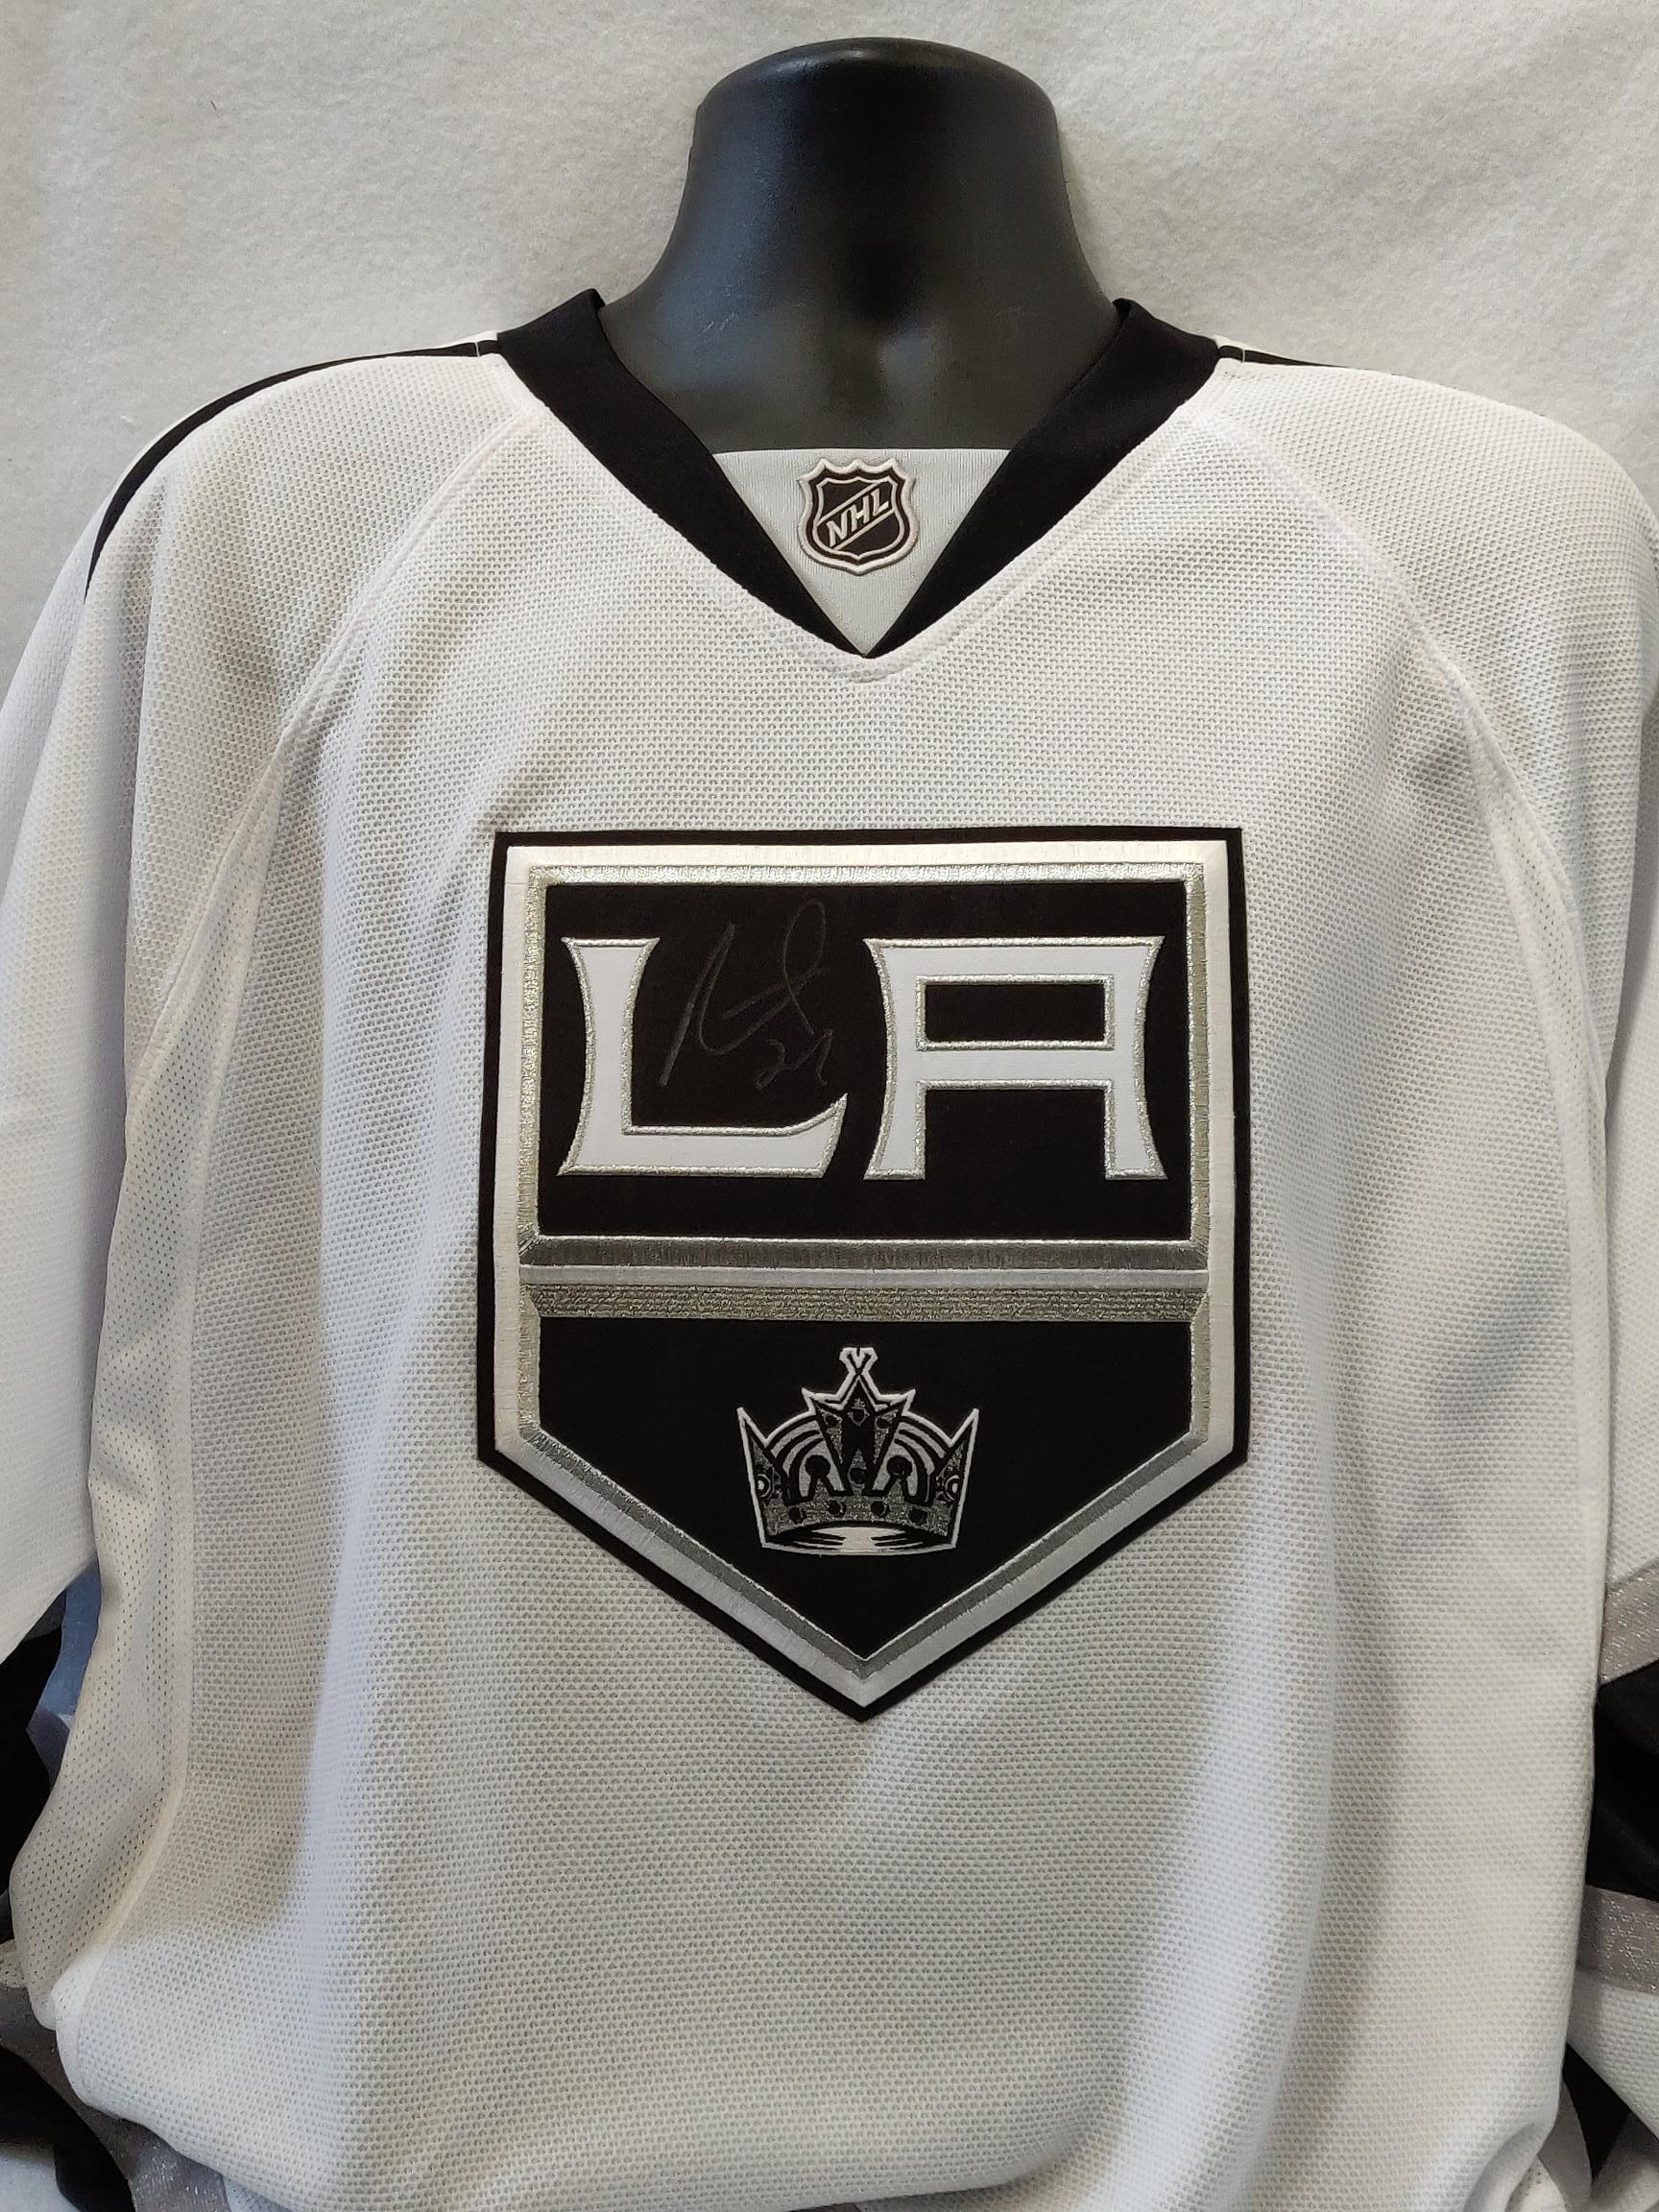 half off bf6d9 8568b Los Angeles Kings NHL Alec Martinez Autographed Jersey